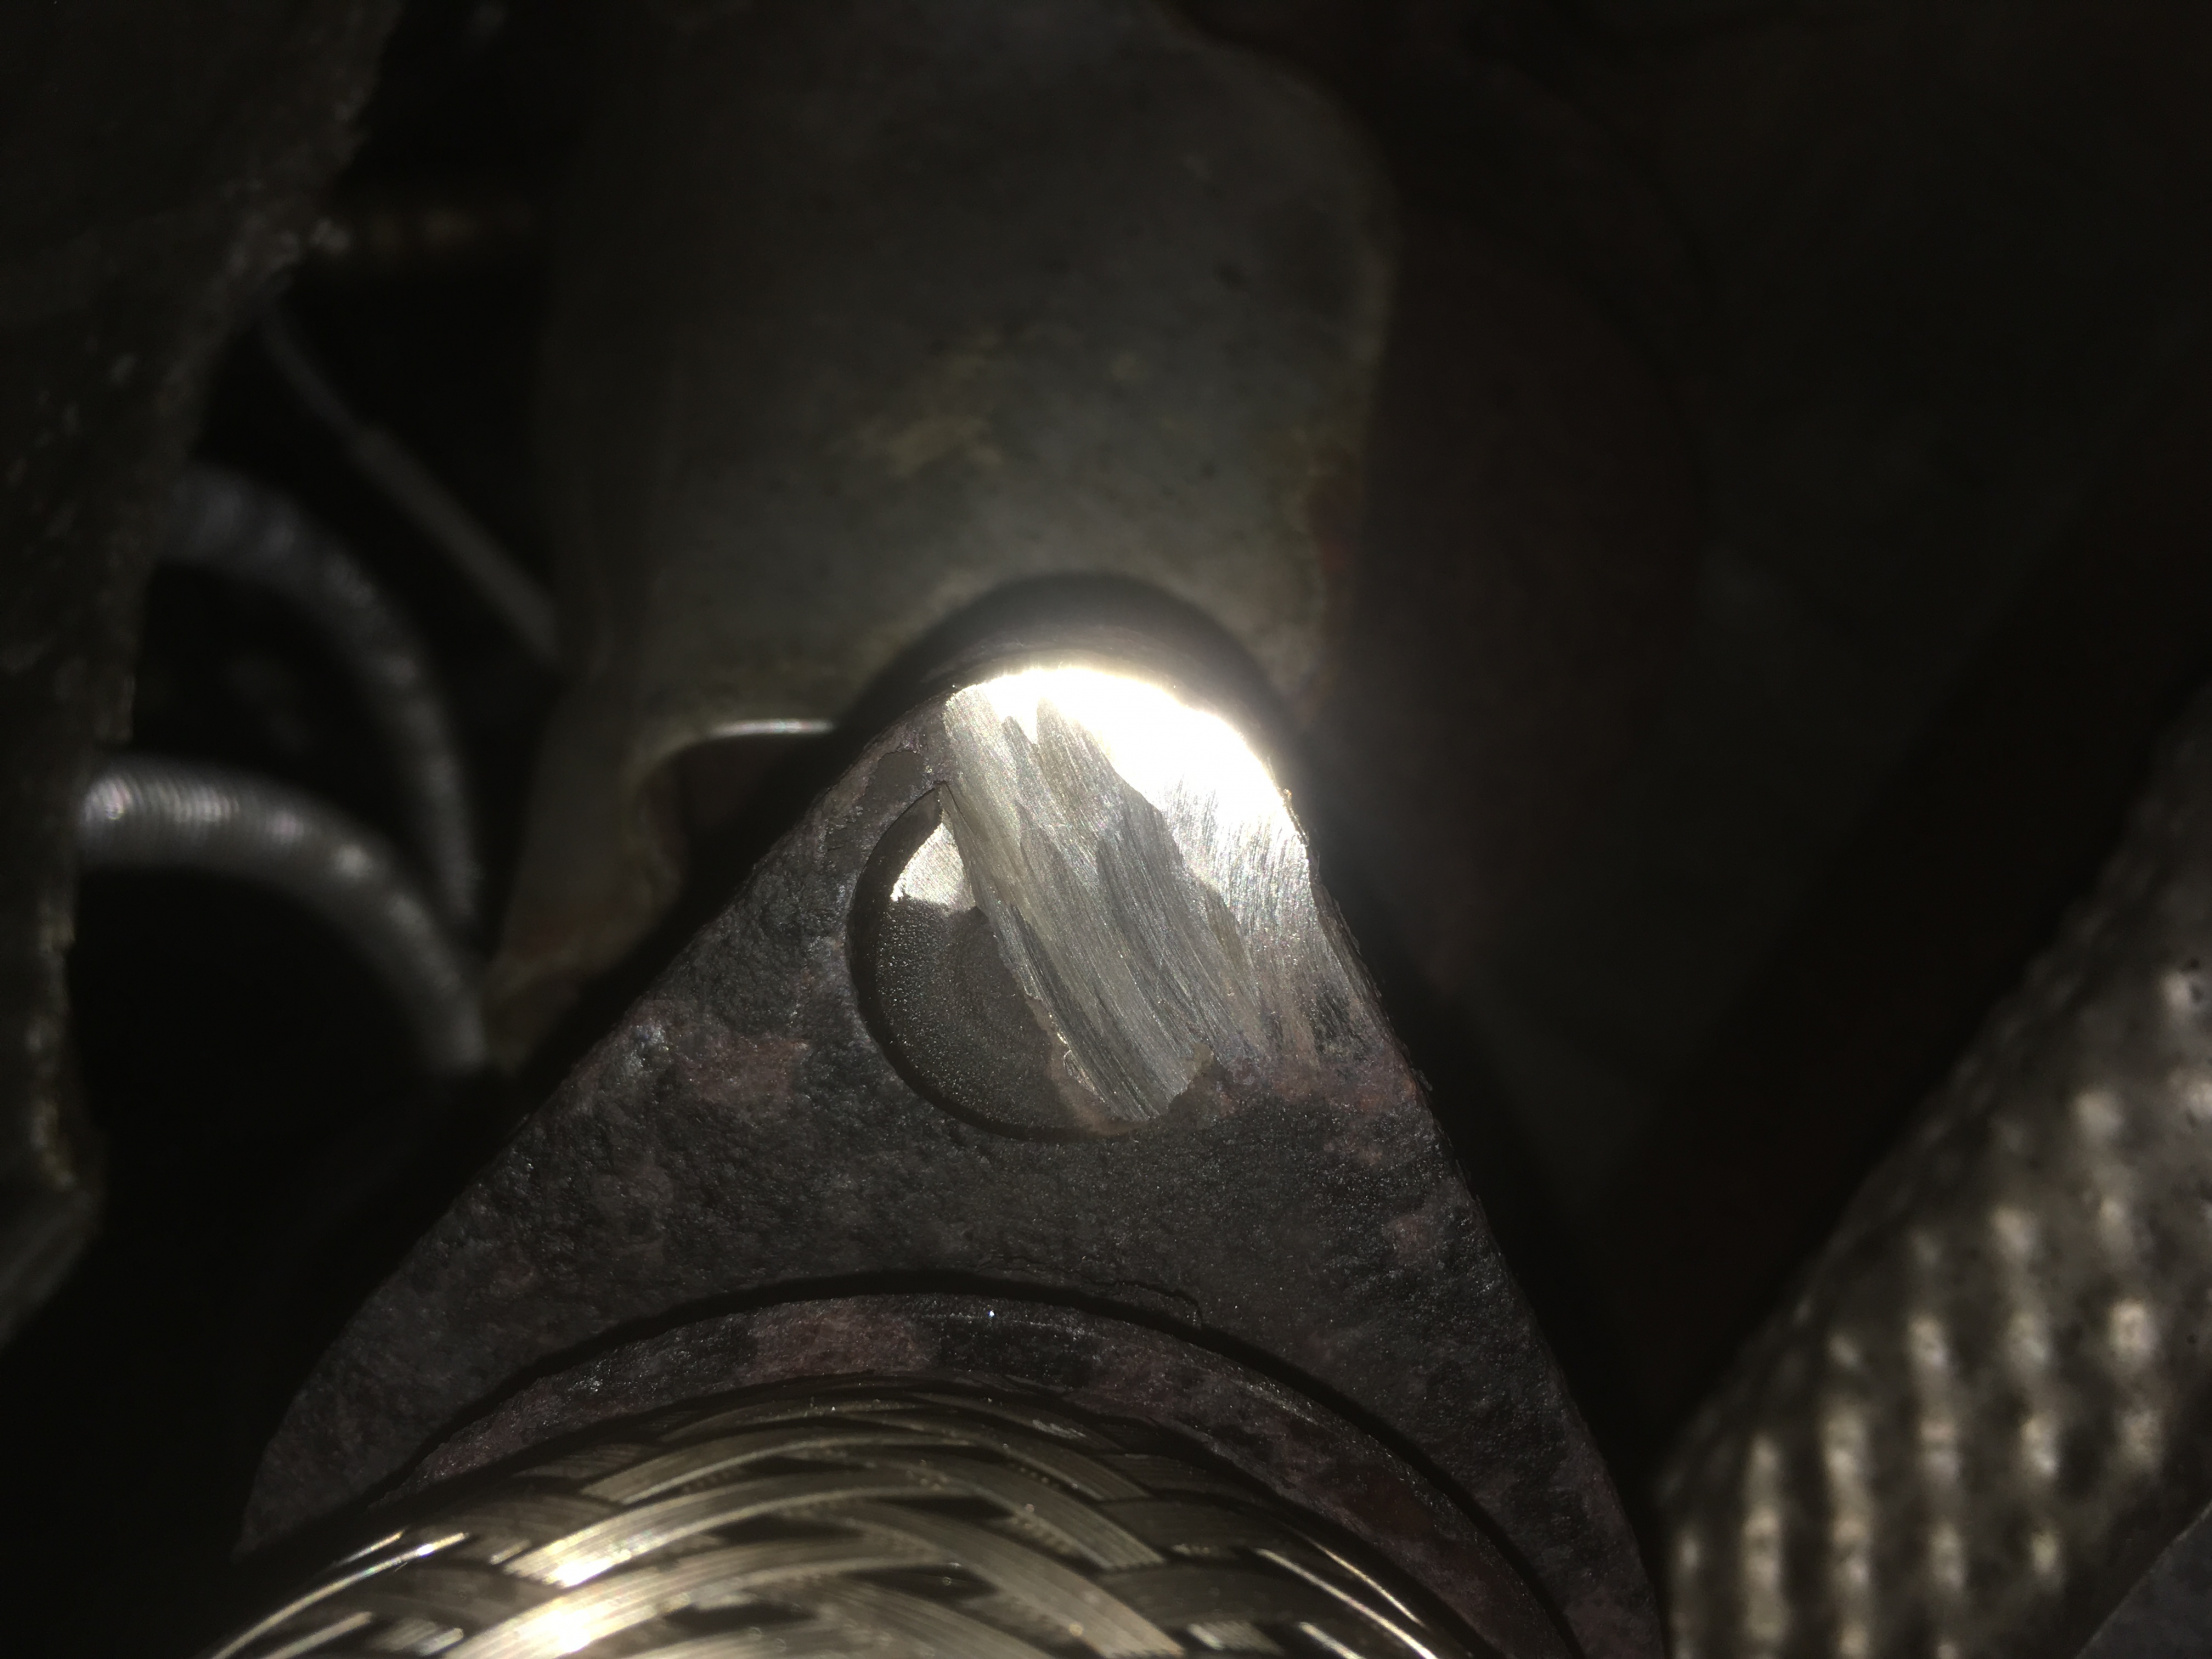 '06 SES 2.0l - Flex Pipe Replacement Confusion-img_2807.jpg